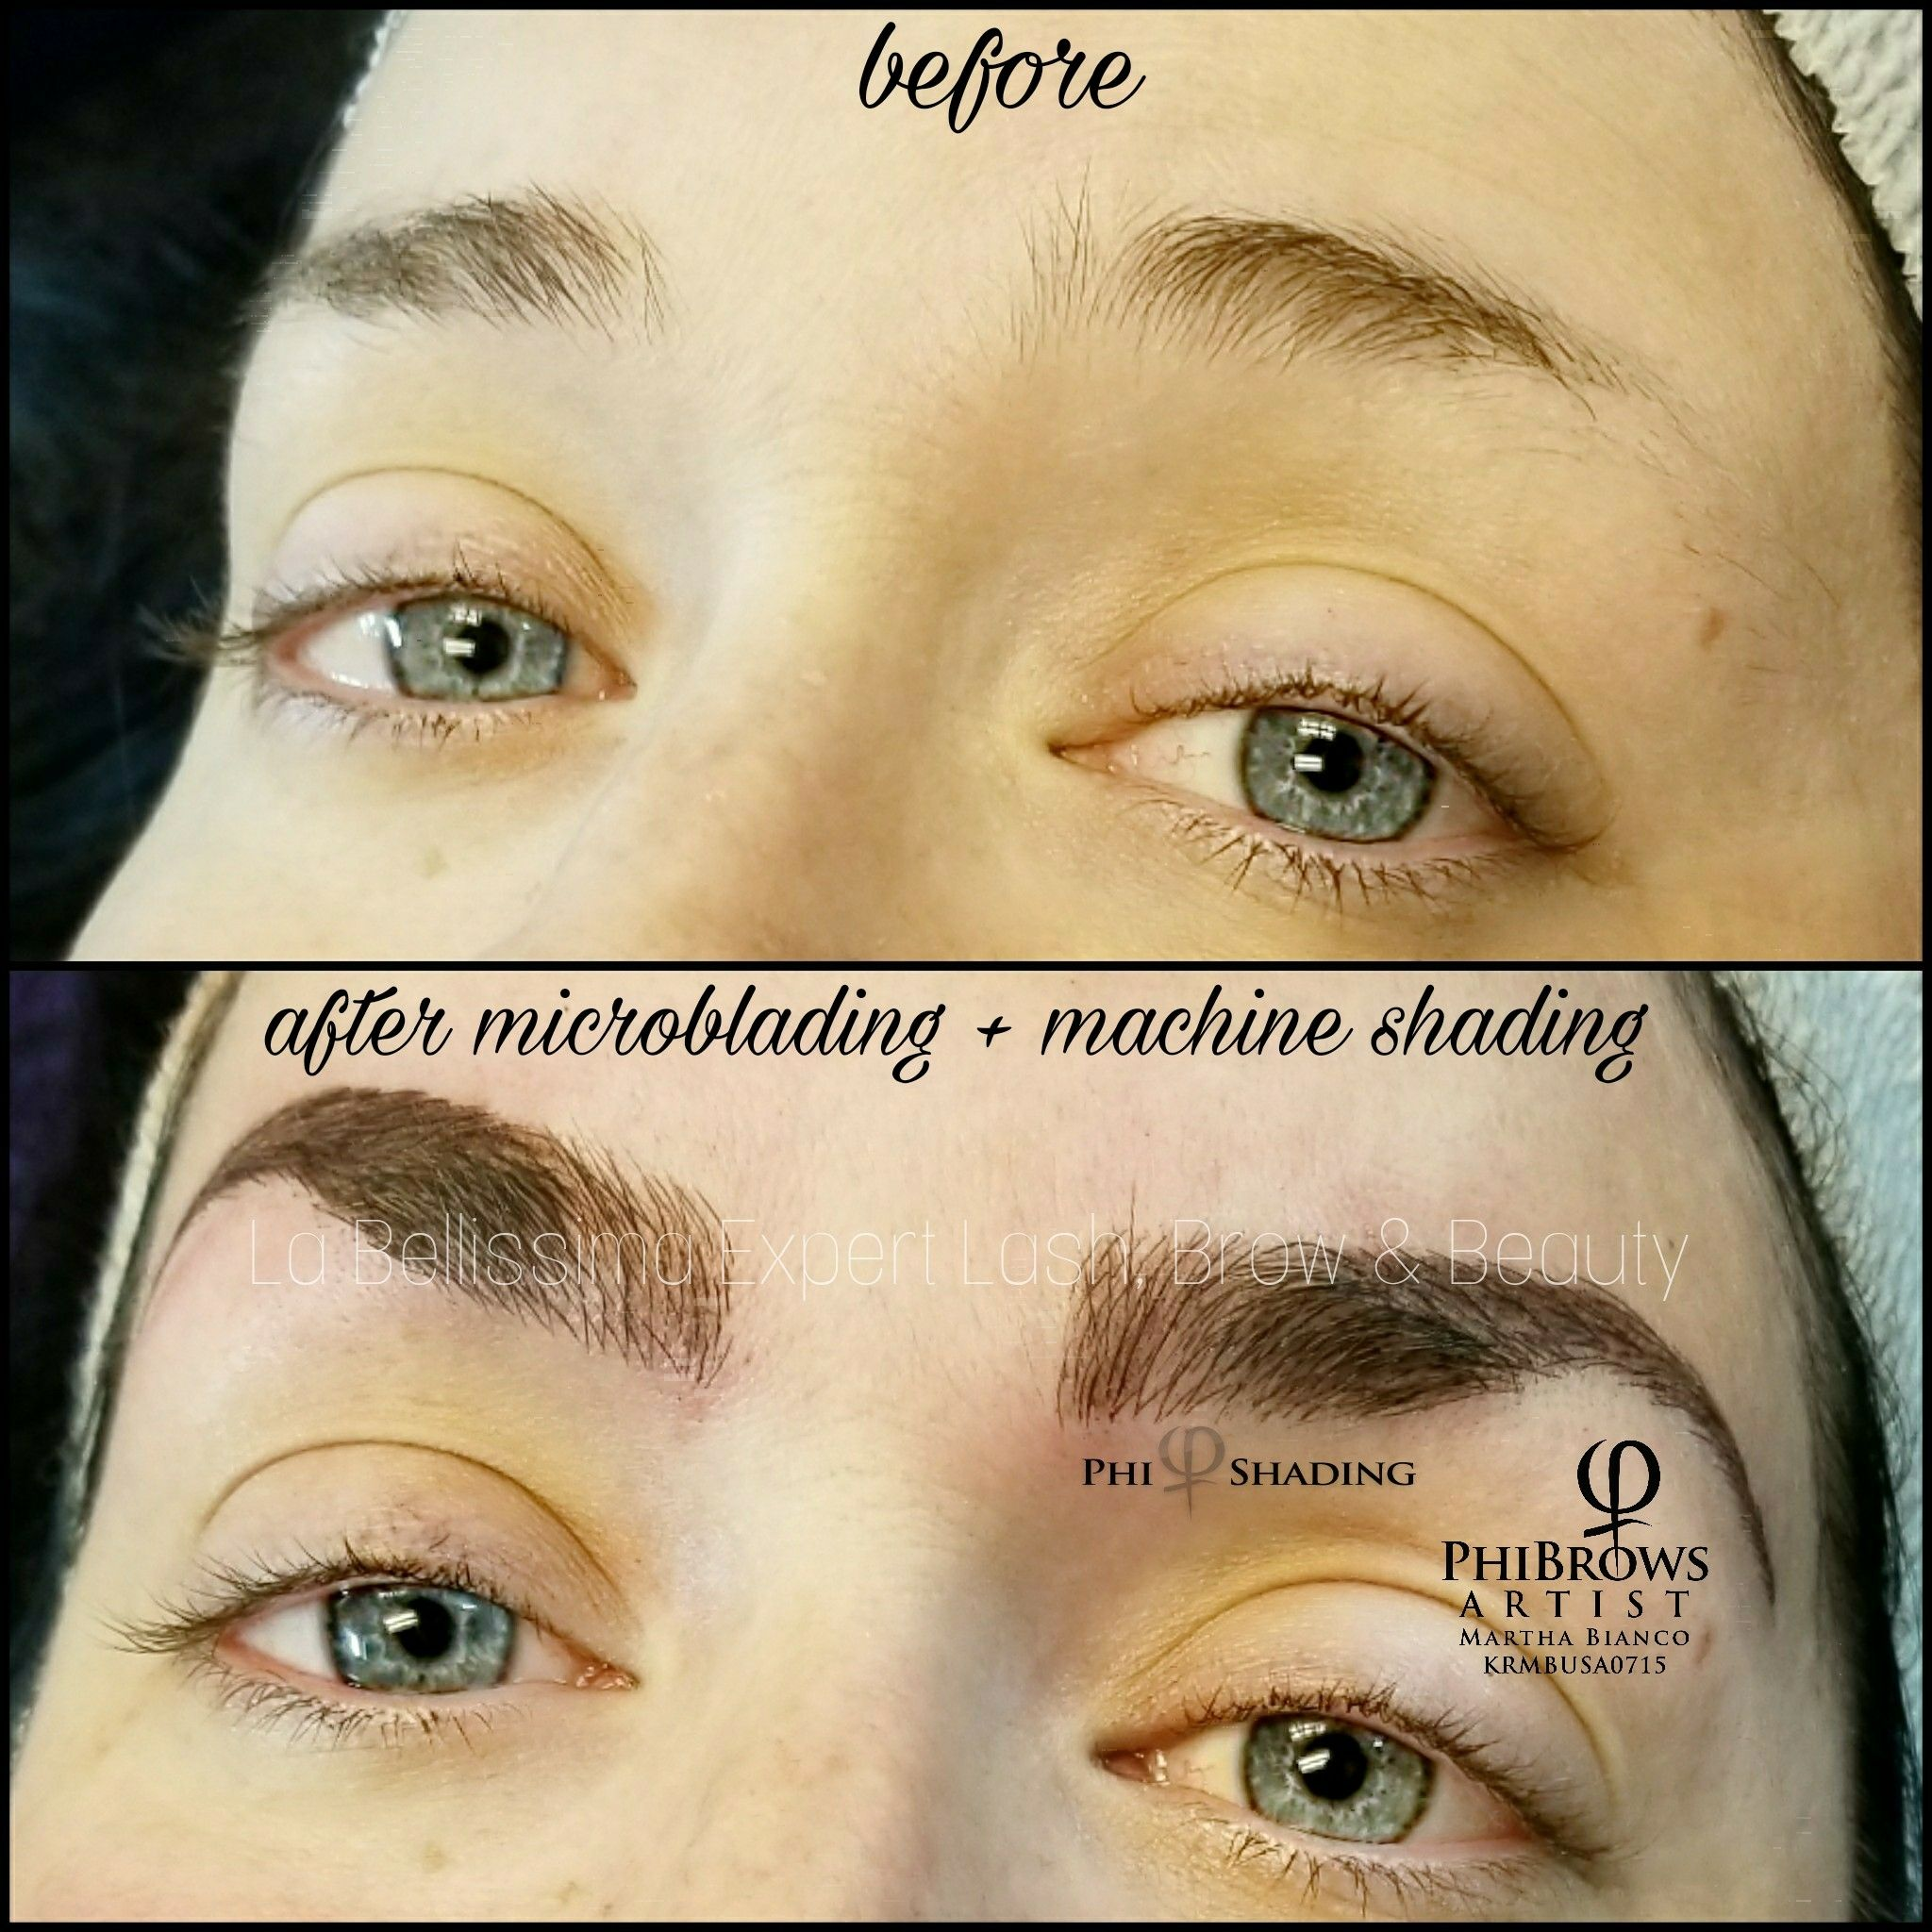 Just loving this big, bold brow with hairstrokes & machine